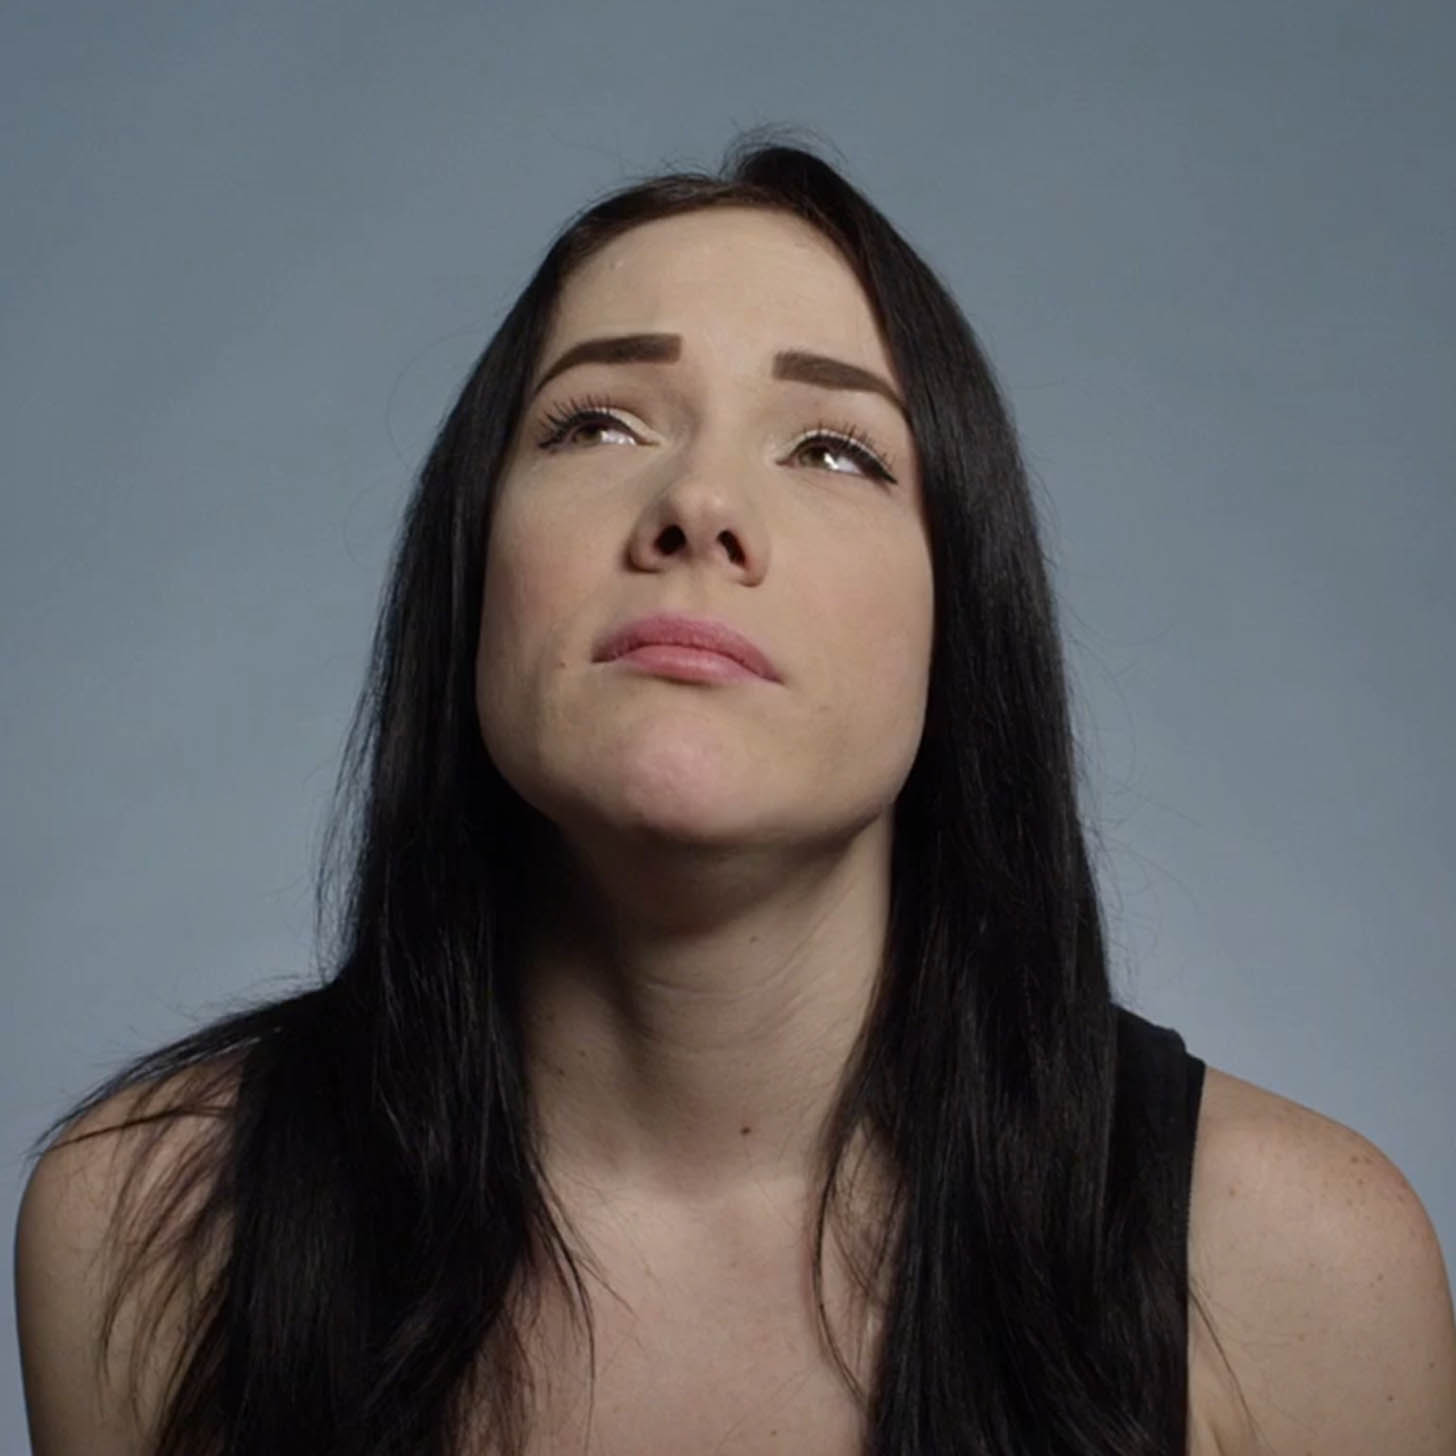 This Heartbreaking Viral Video Shows What Eating Disorders Really Look Like